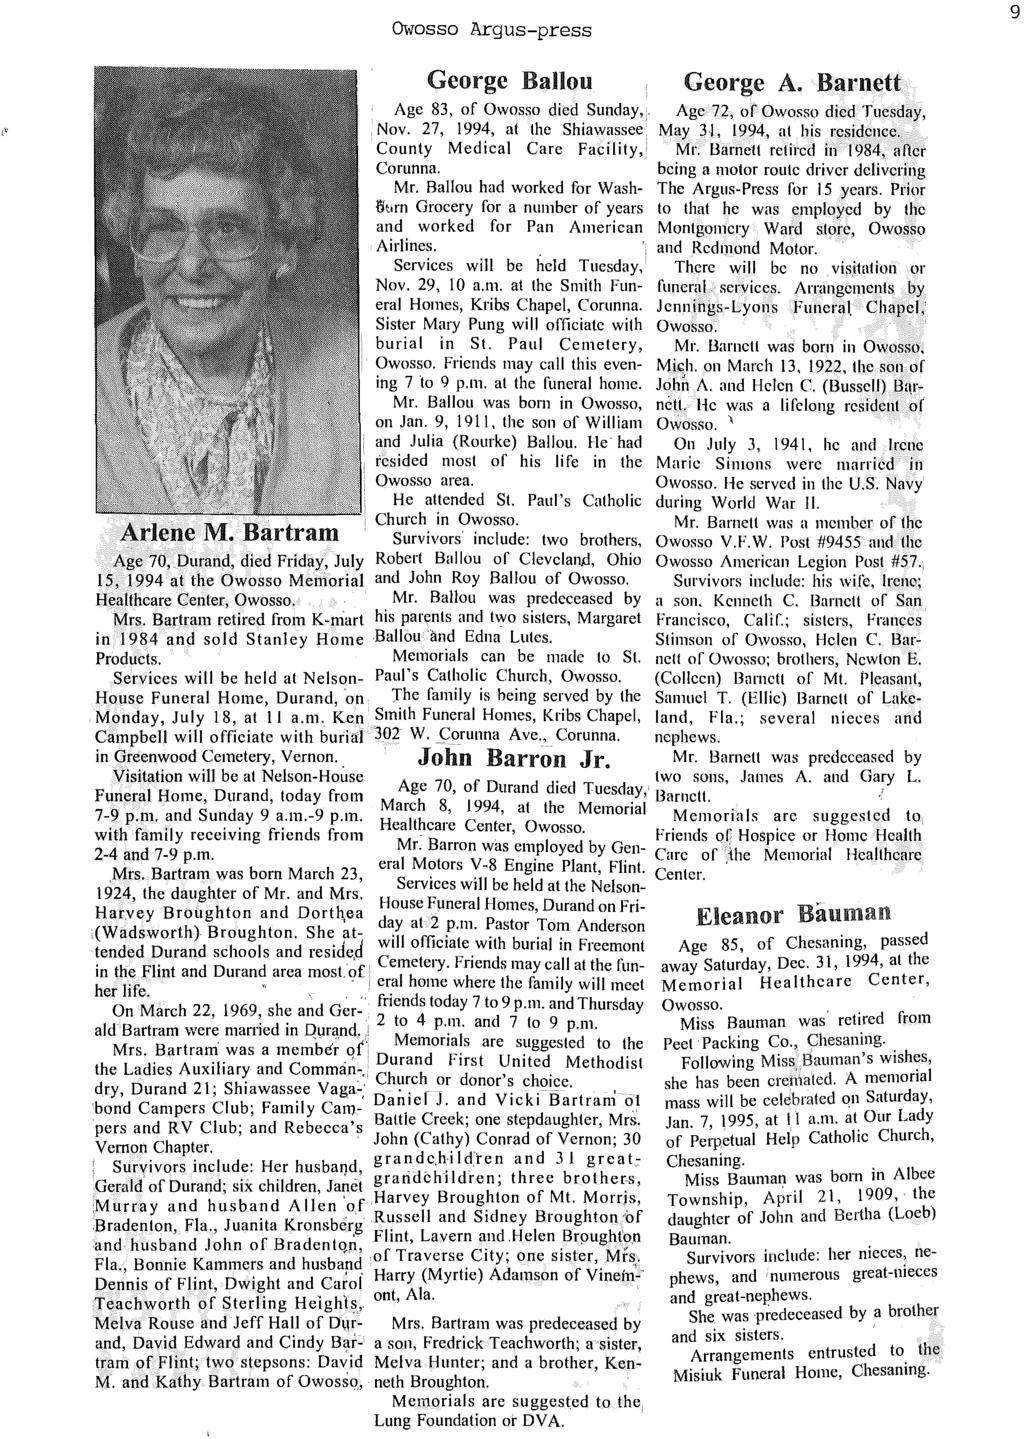 Owosso Argus-press 9 George Ballou George A. Barnett Age 83, of Owosso died Sunday,. Age 72, of Owosso died Tuesday, Nov. 27, 1994, at the Shiawassee May 31, 1994, at his residence.